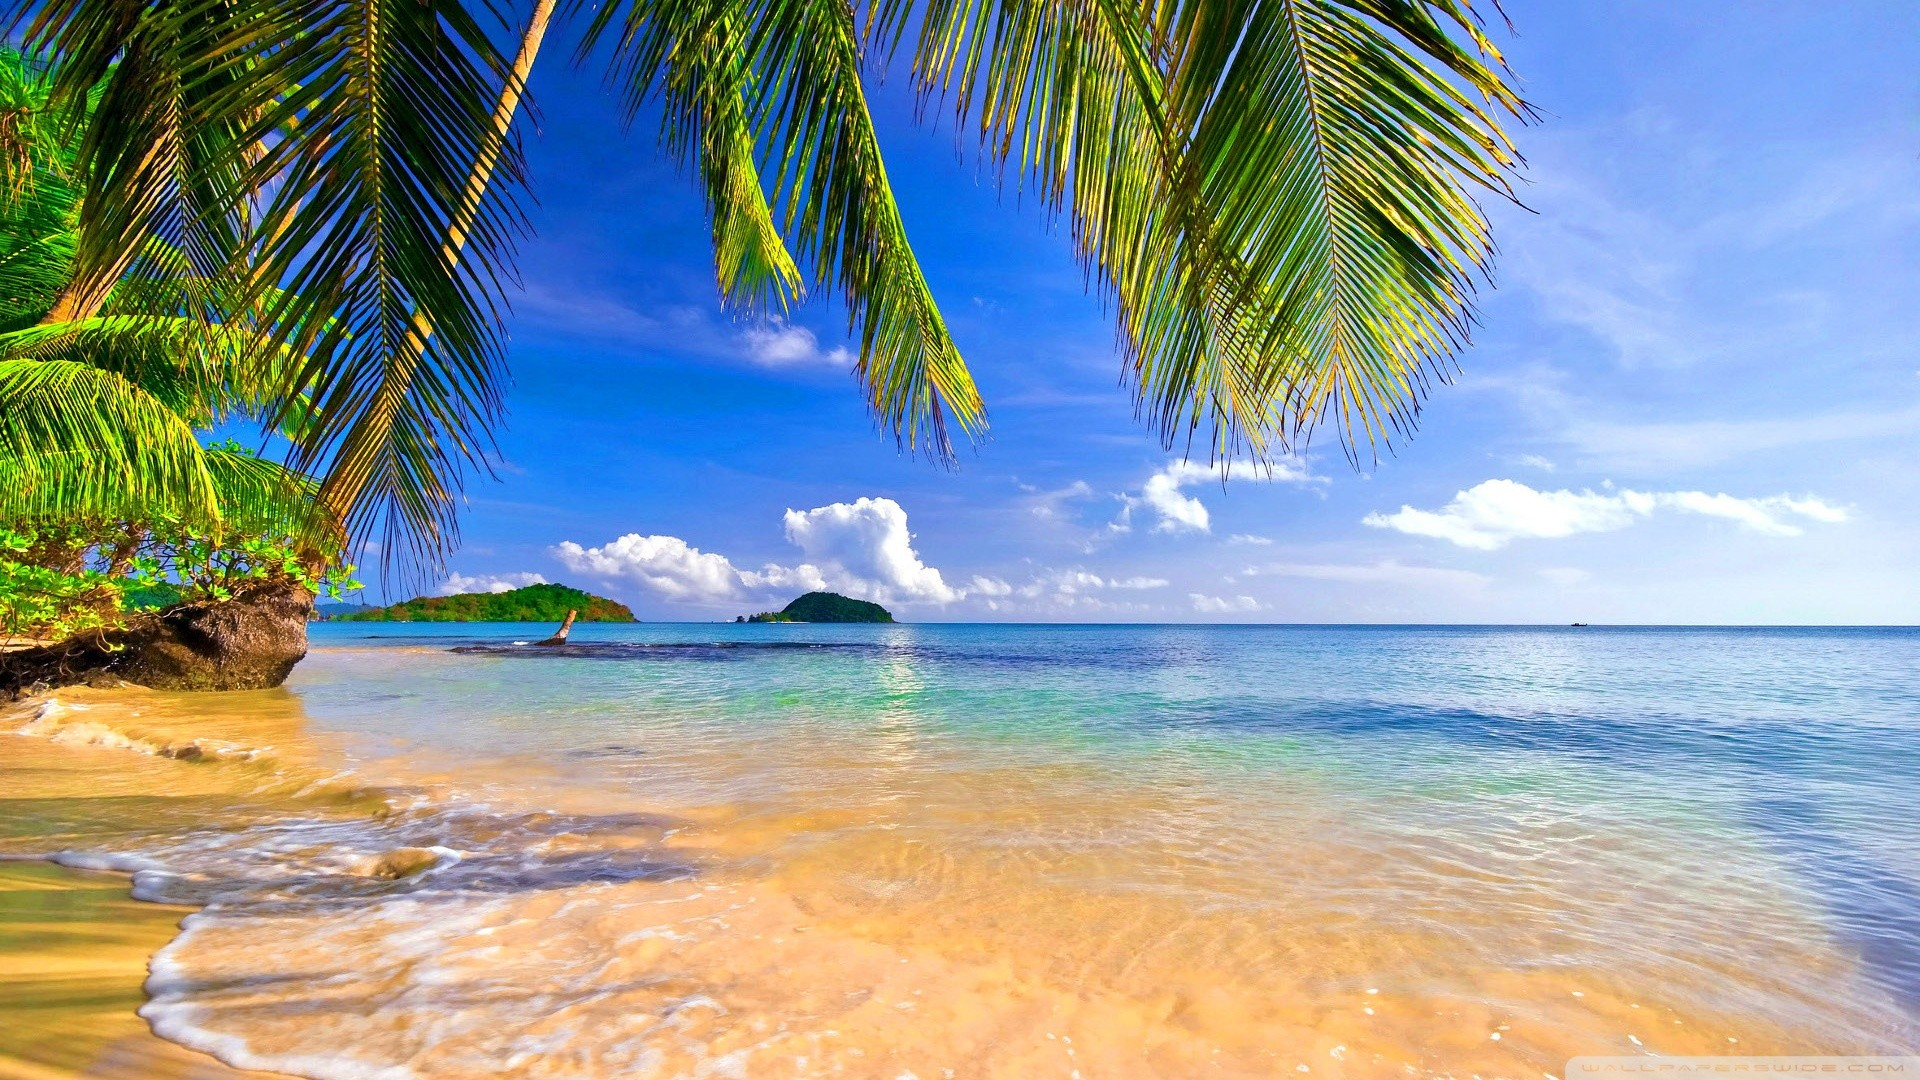 Beach Wallpaper Widescreen High Resolution (60+ Images